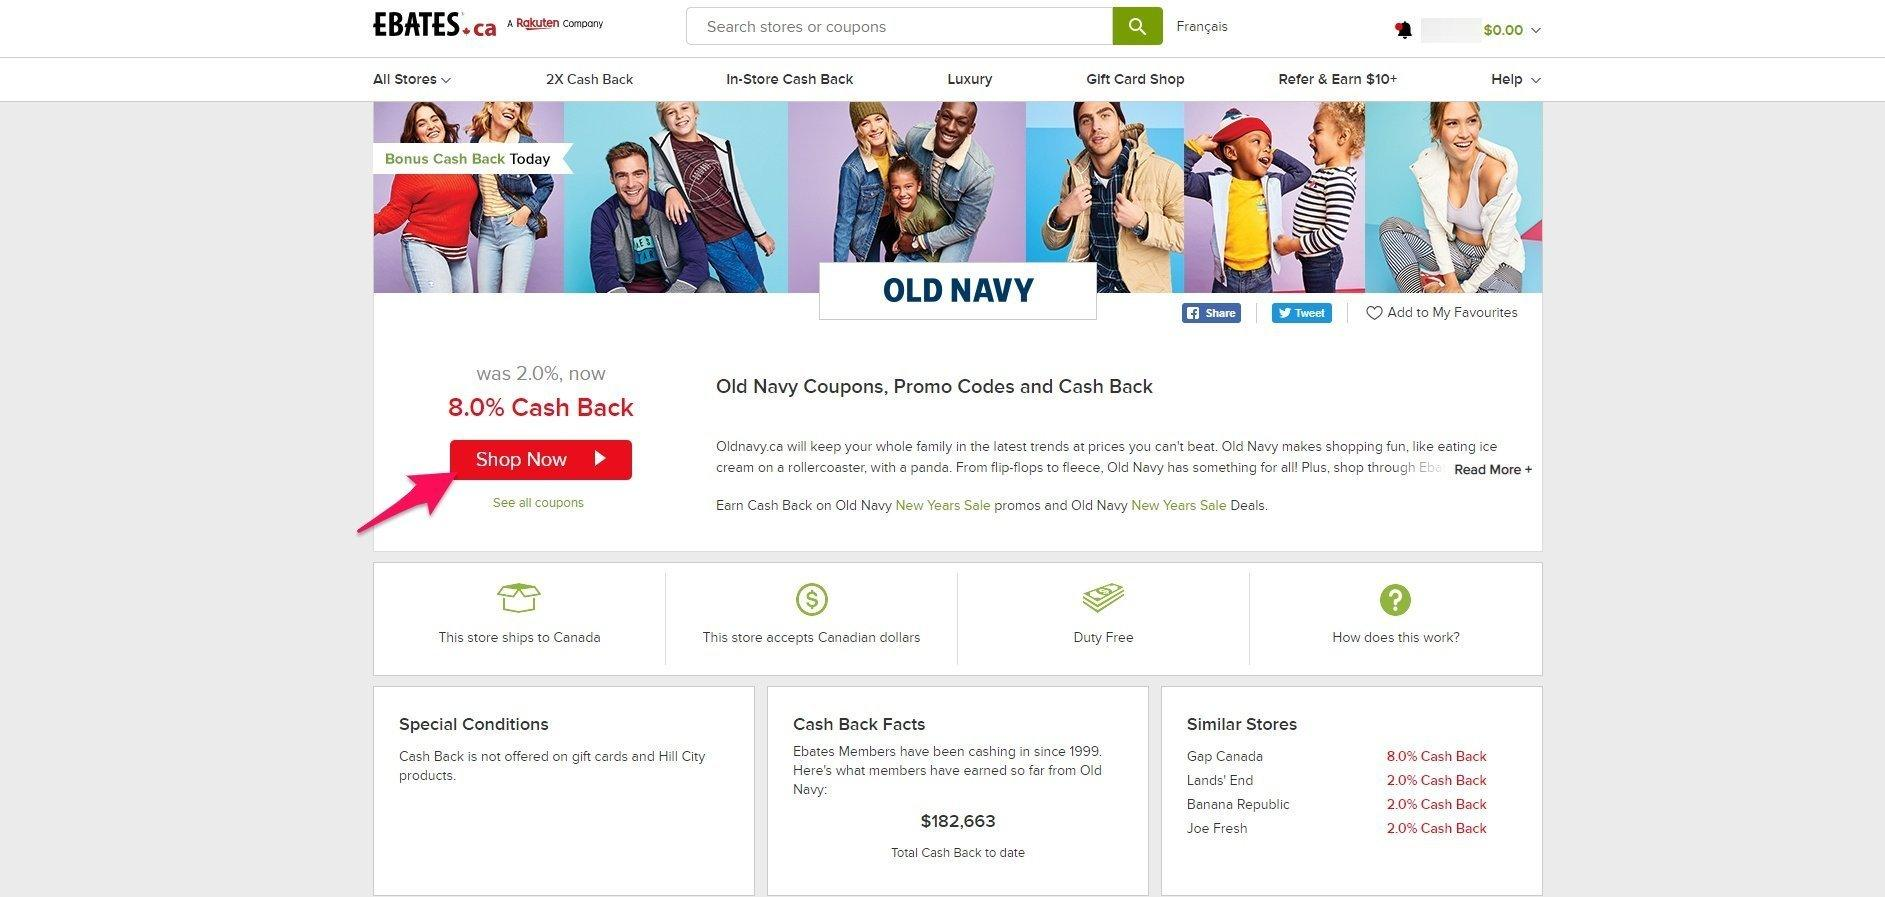 shop now at Old Navy